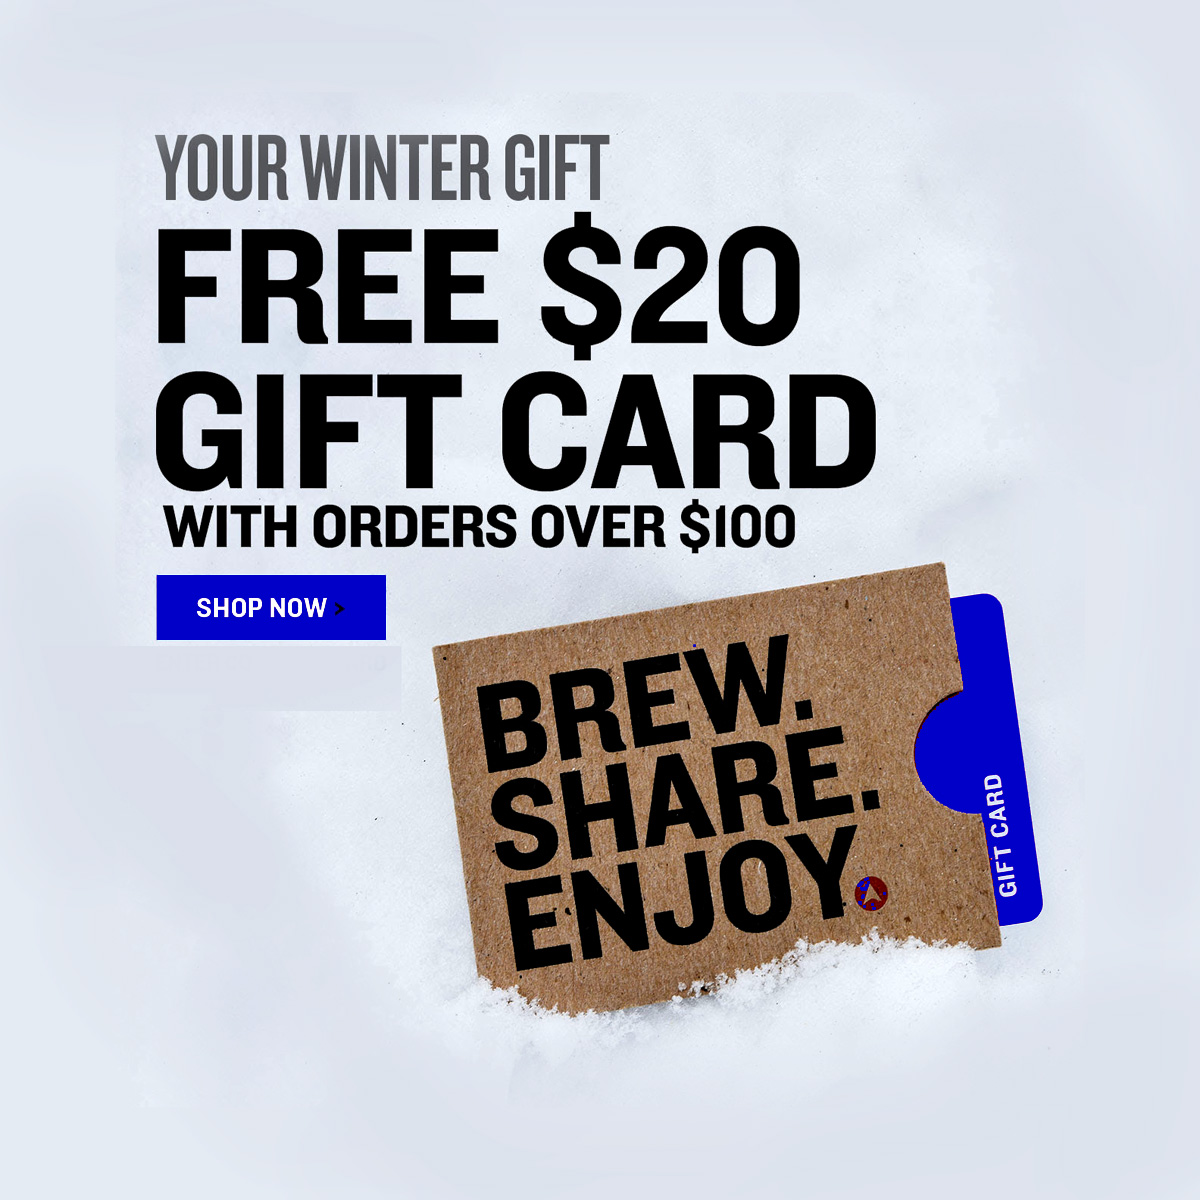 Northern Brewer Get a FREE $20 NorthernBrewer.com Giftcard with this Northern Brewer promo code Coupon Code